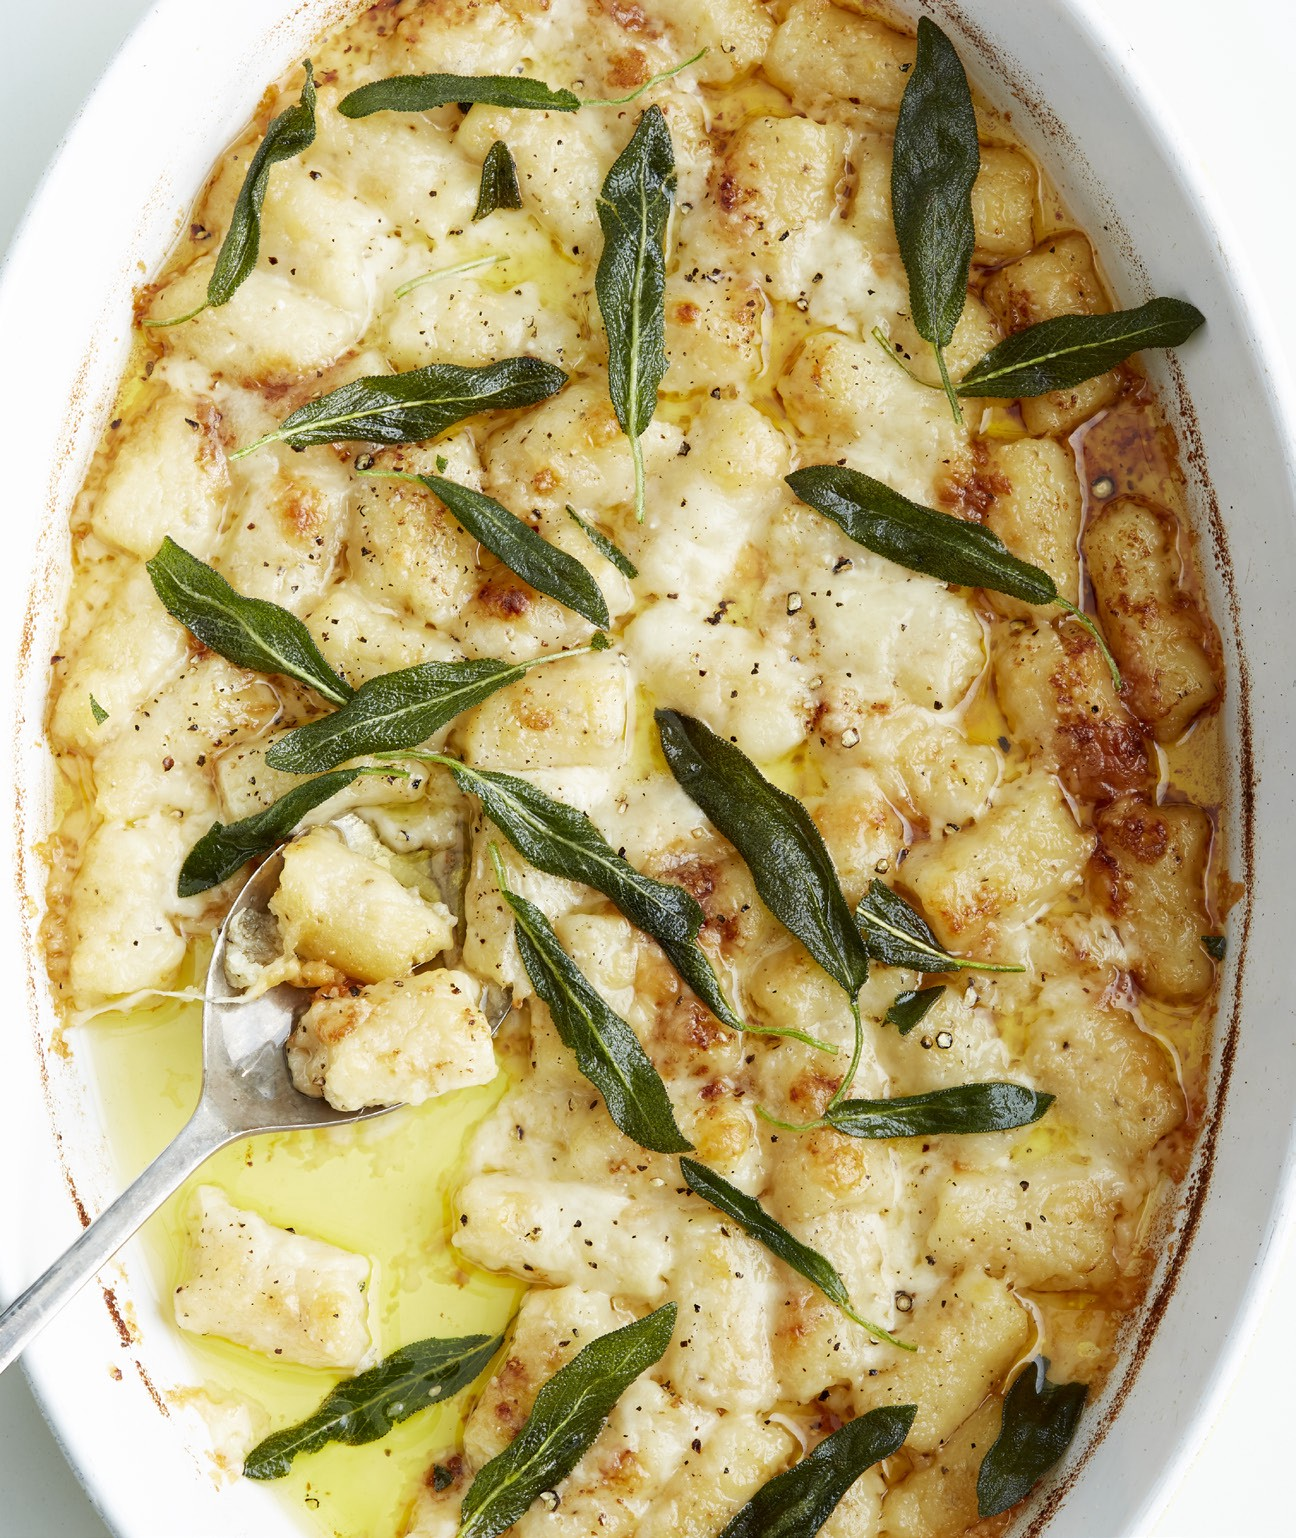 An oval casserole dish of gnocchi gratin garnished with crispy sage leaves.